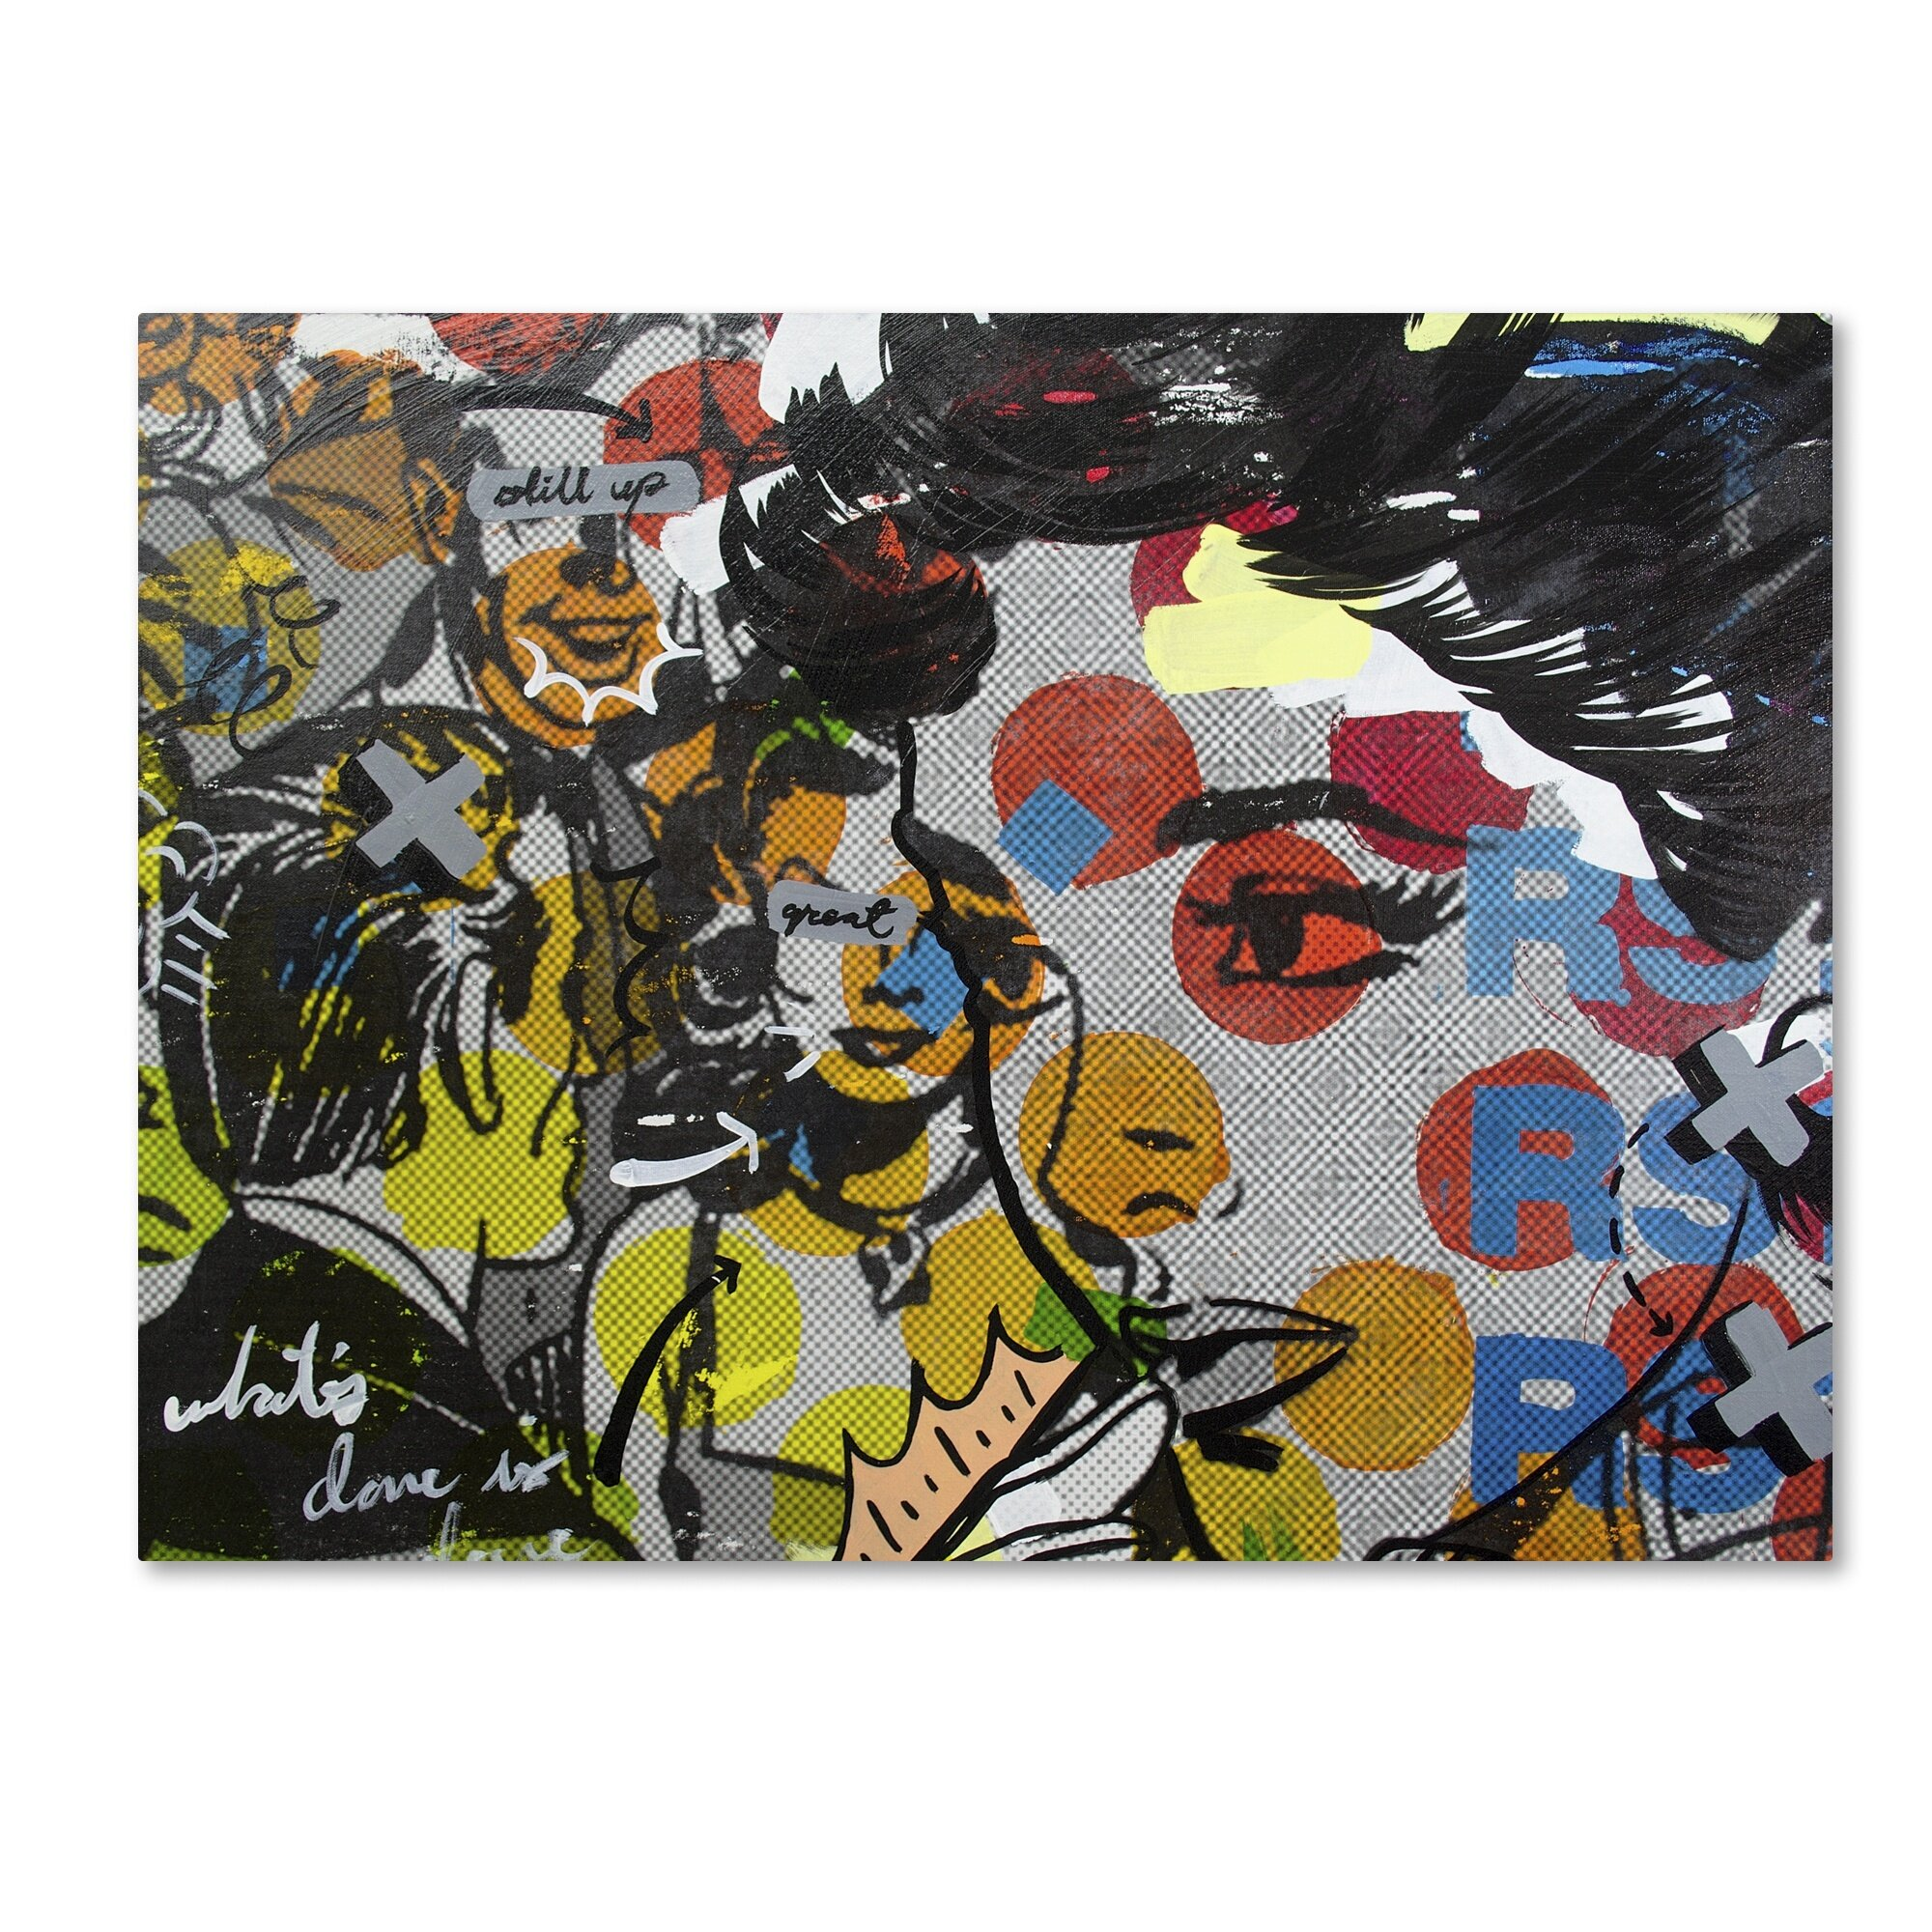 Trademark Art Dinner Pa Graphic Art On Wrapped Canvas On Canvas Wayfair